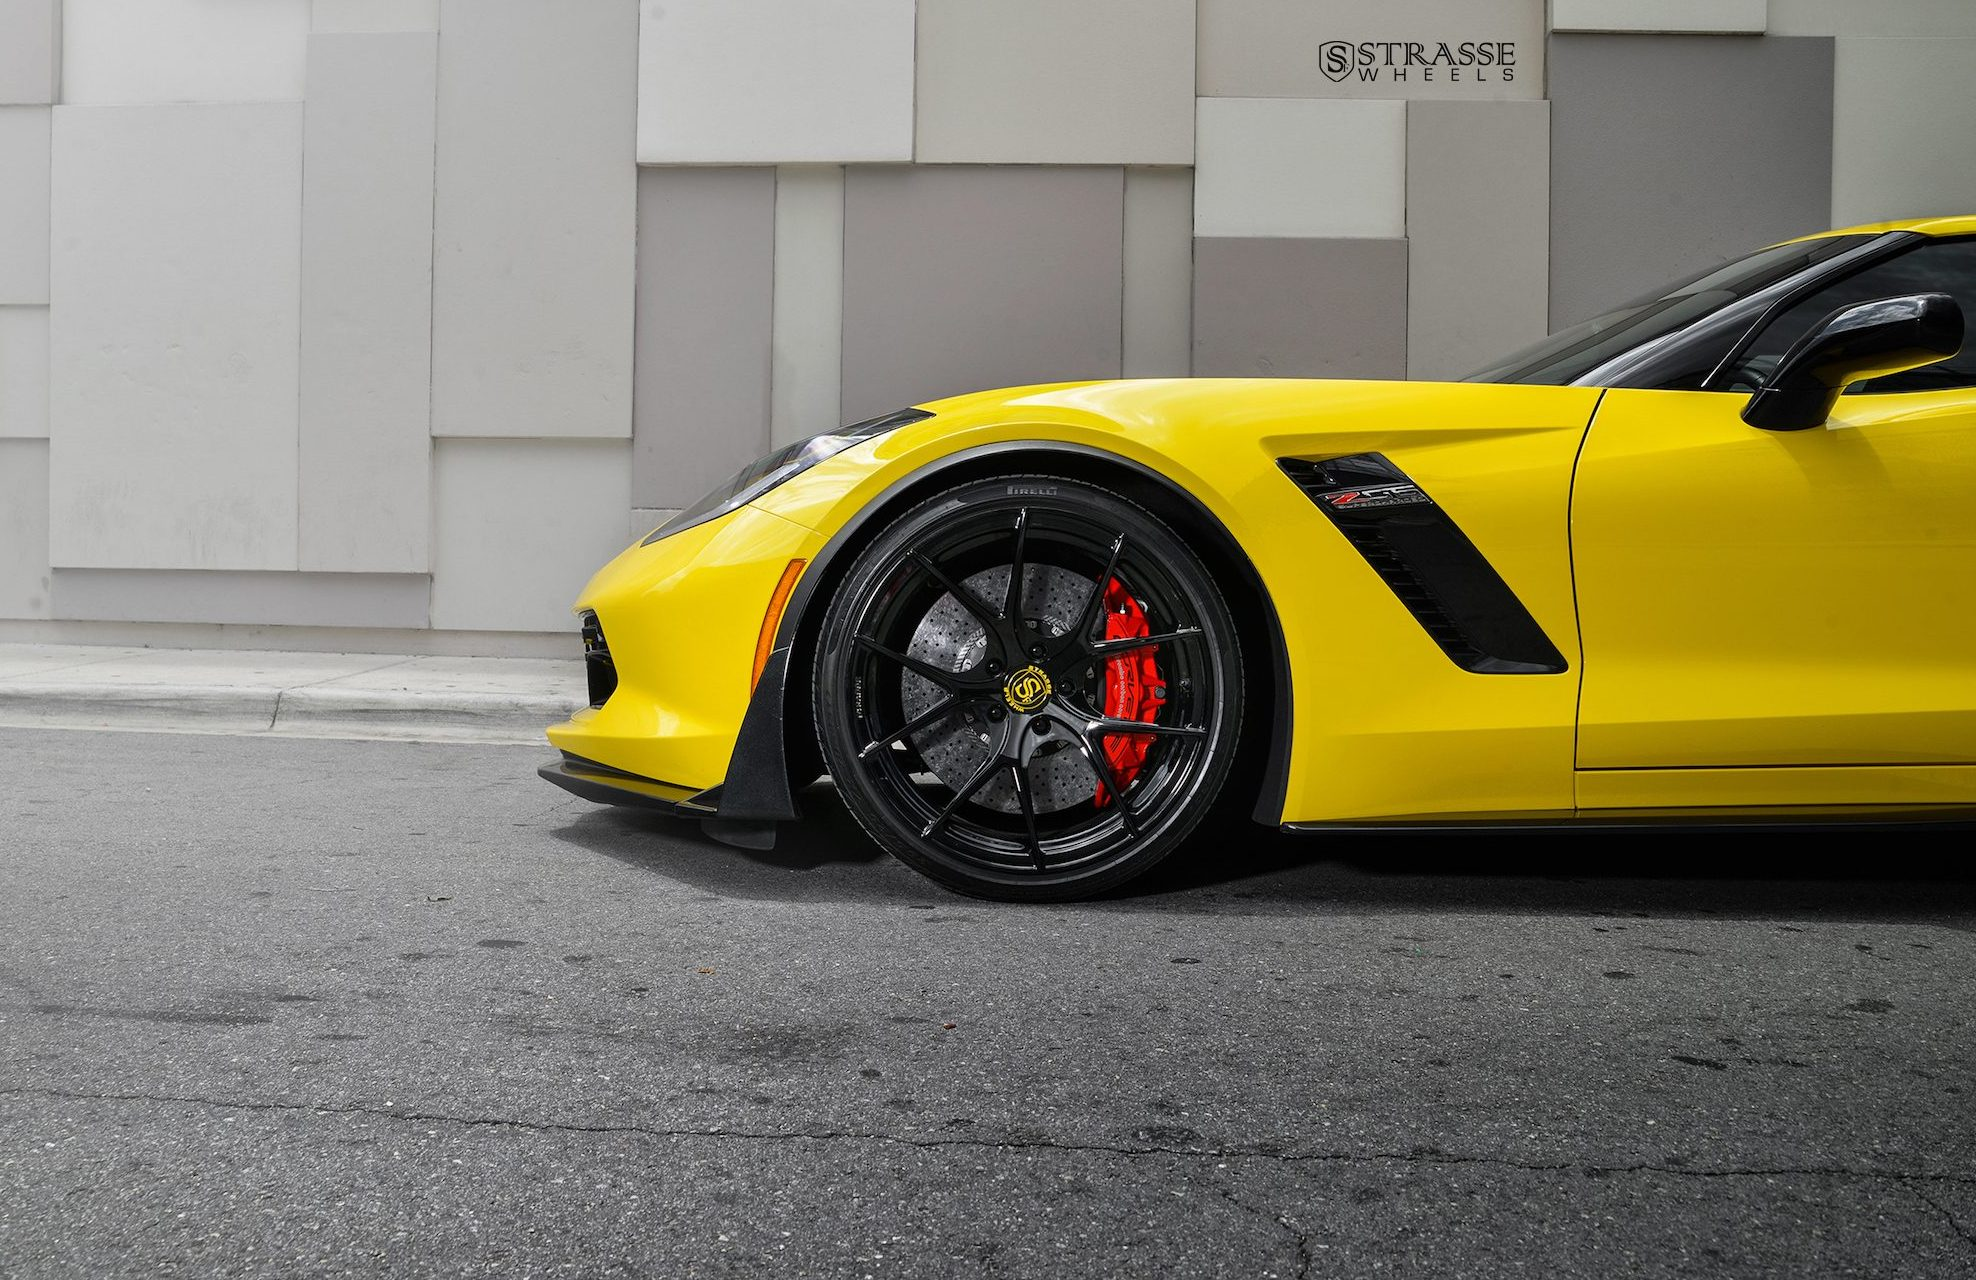 chevrolet corvette z06 strasse wheels high performance. Black Bedroom Furniture Sets. Home Design Ideas